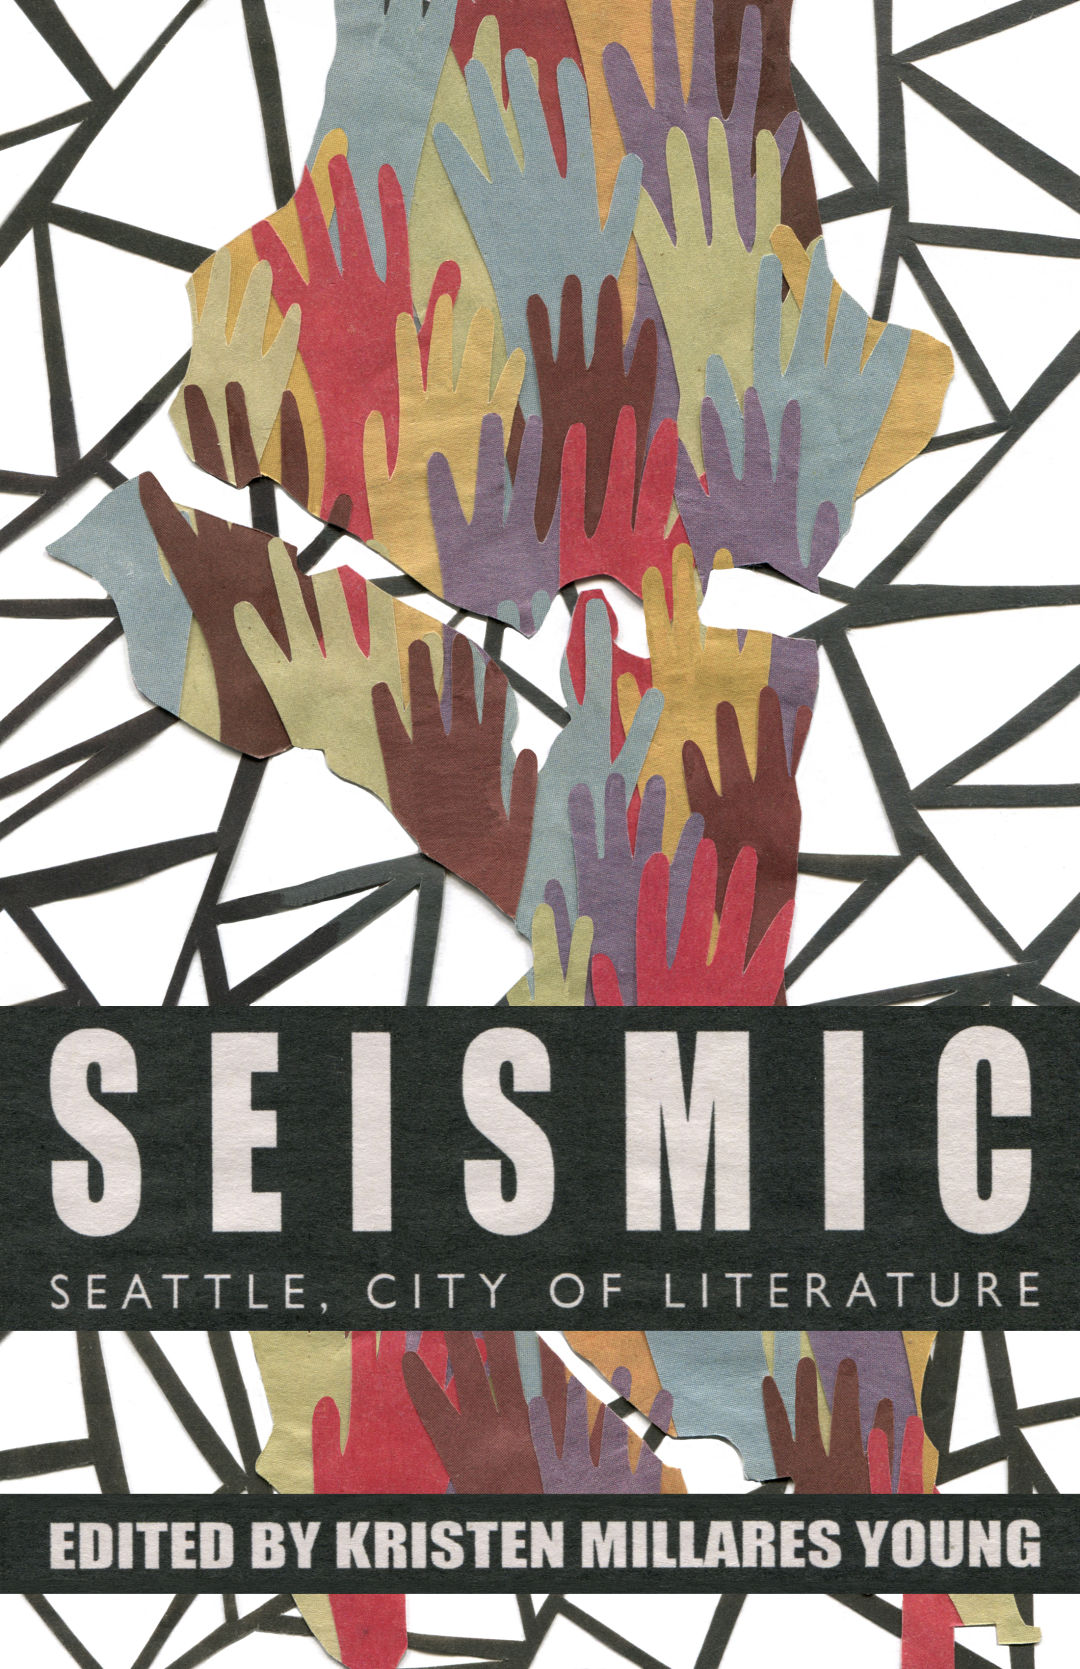 Seismic_front_cover_by_Mita_Mahato_dxlem